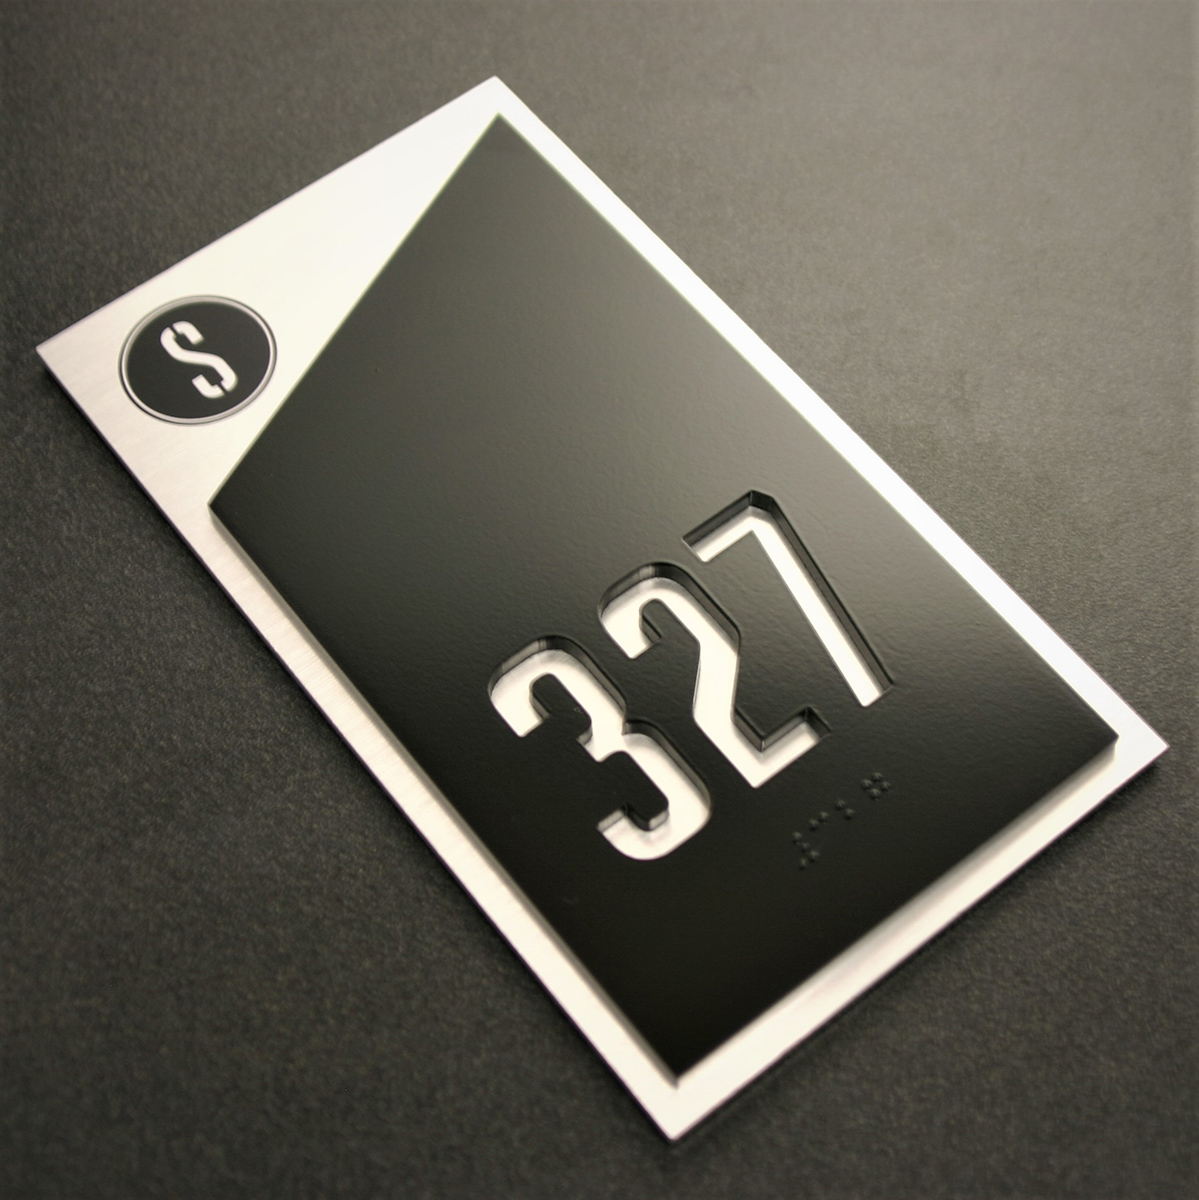 """.25"""" thick surface painted acrylic faceplate with laser cut numbers and friction fit black raster braille. .25"""" thick painted acrylic backplate with brushed aluminum laminate applied to surface. (Please note – Because room numbers are not raised in conjunction with the use of braille, this sign is not ADA compliant)."""